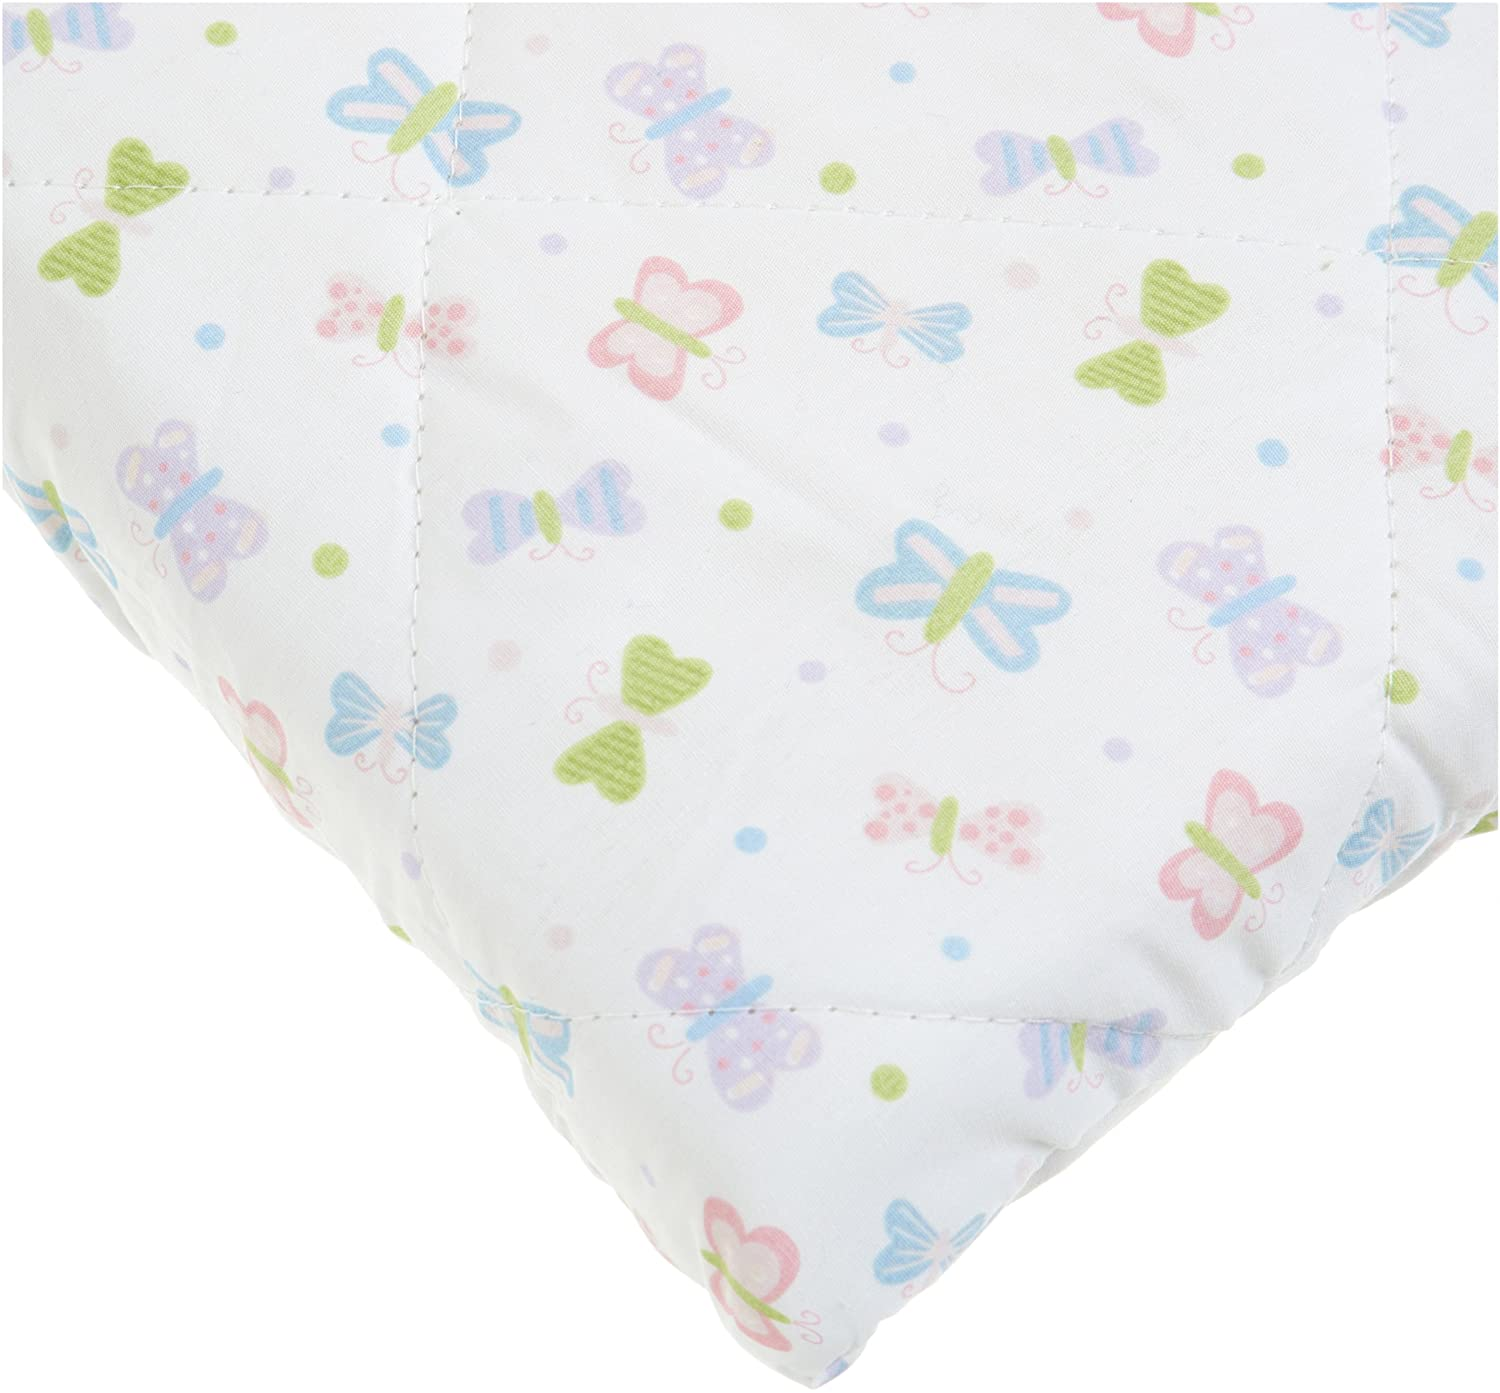 Carters Quilted Woven Playard Fitted Sheet, Butterfly (Discontinued by Manufacturer) Kids Line C151PFSQ